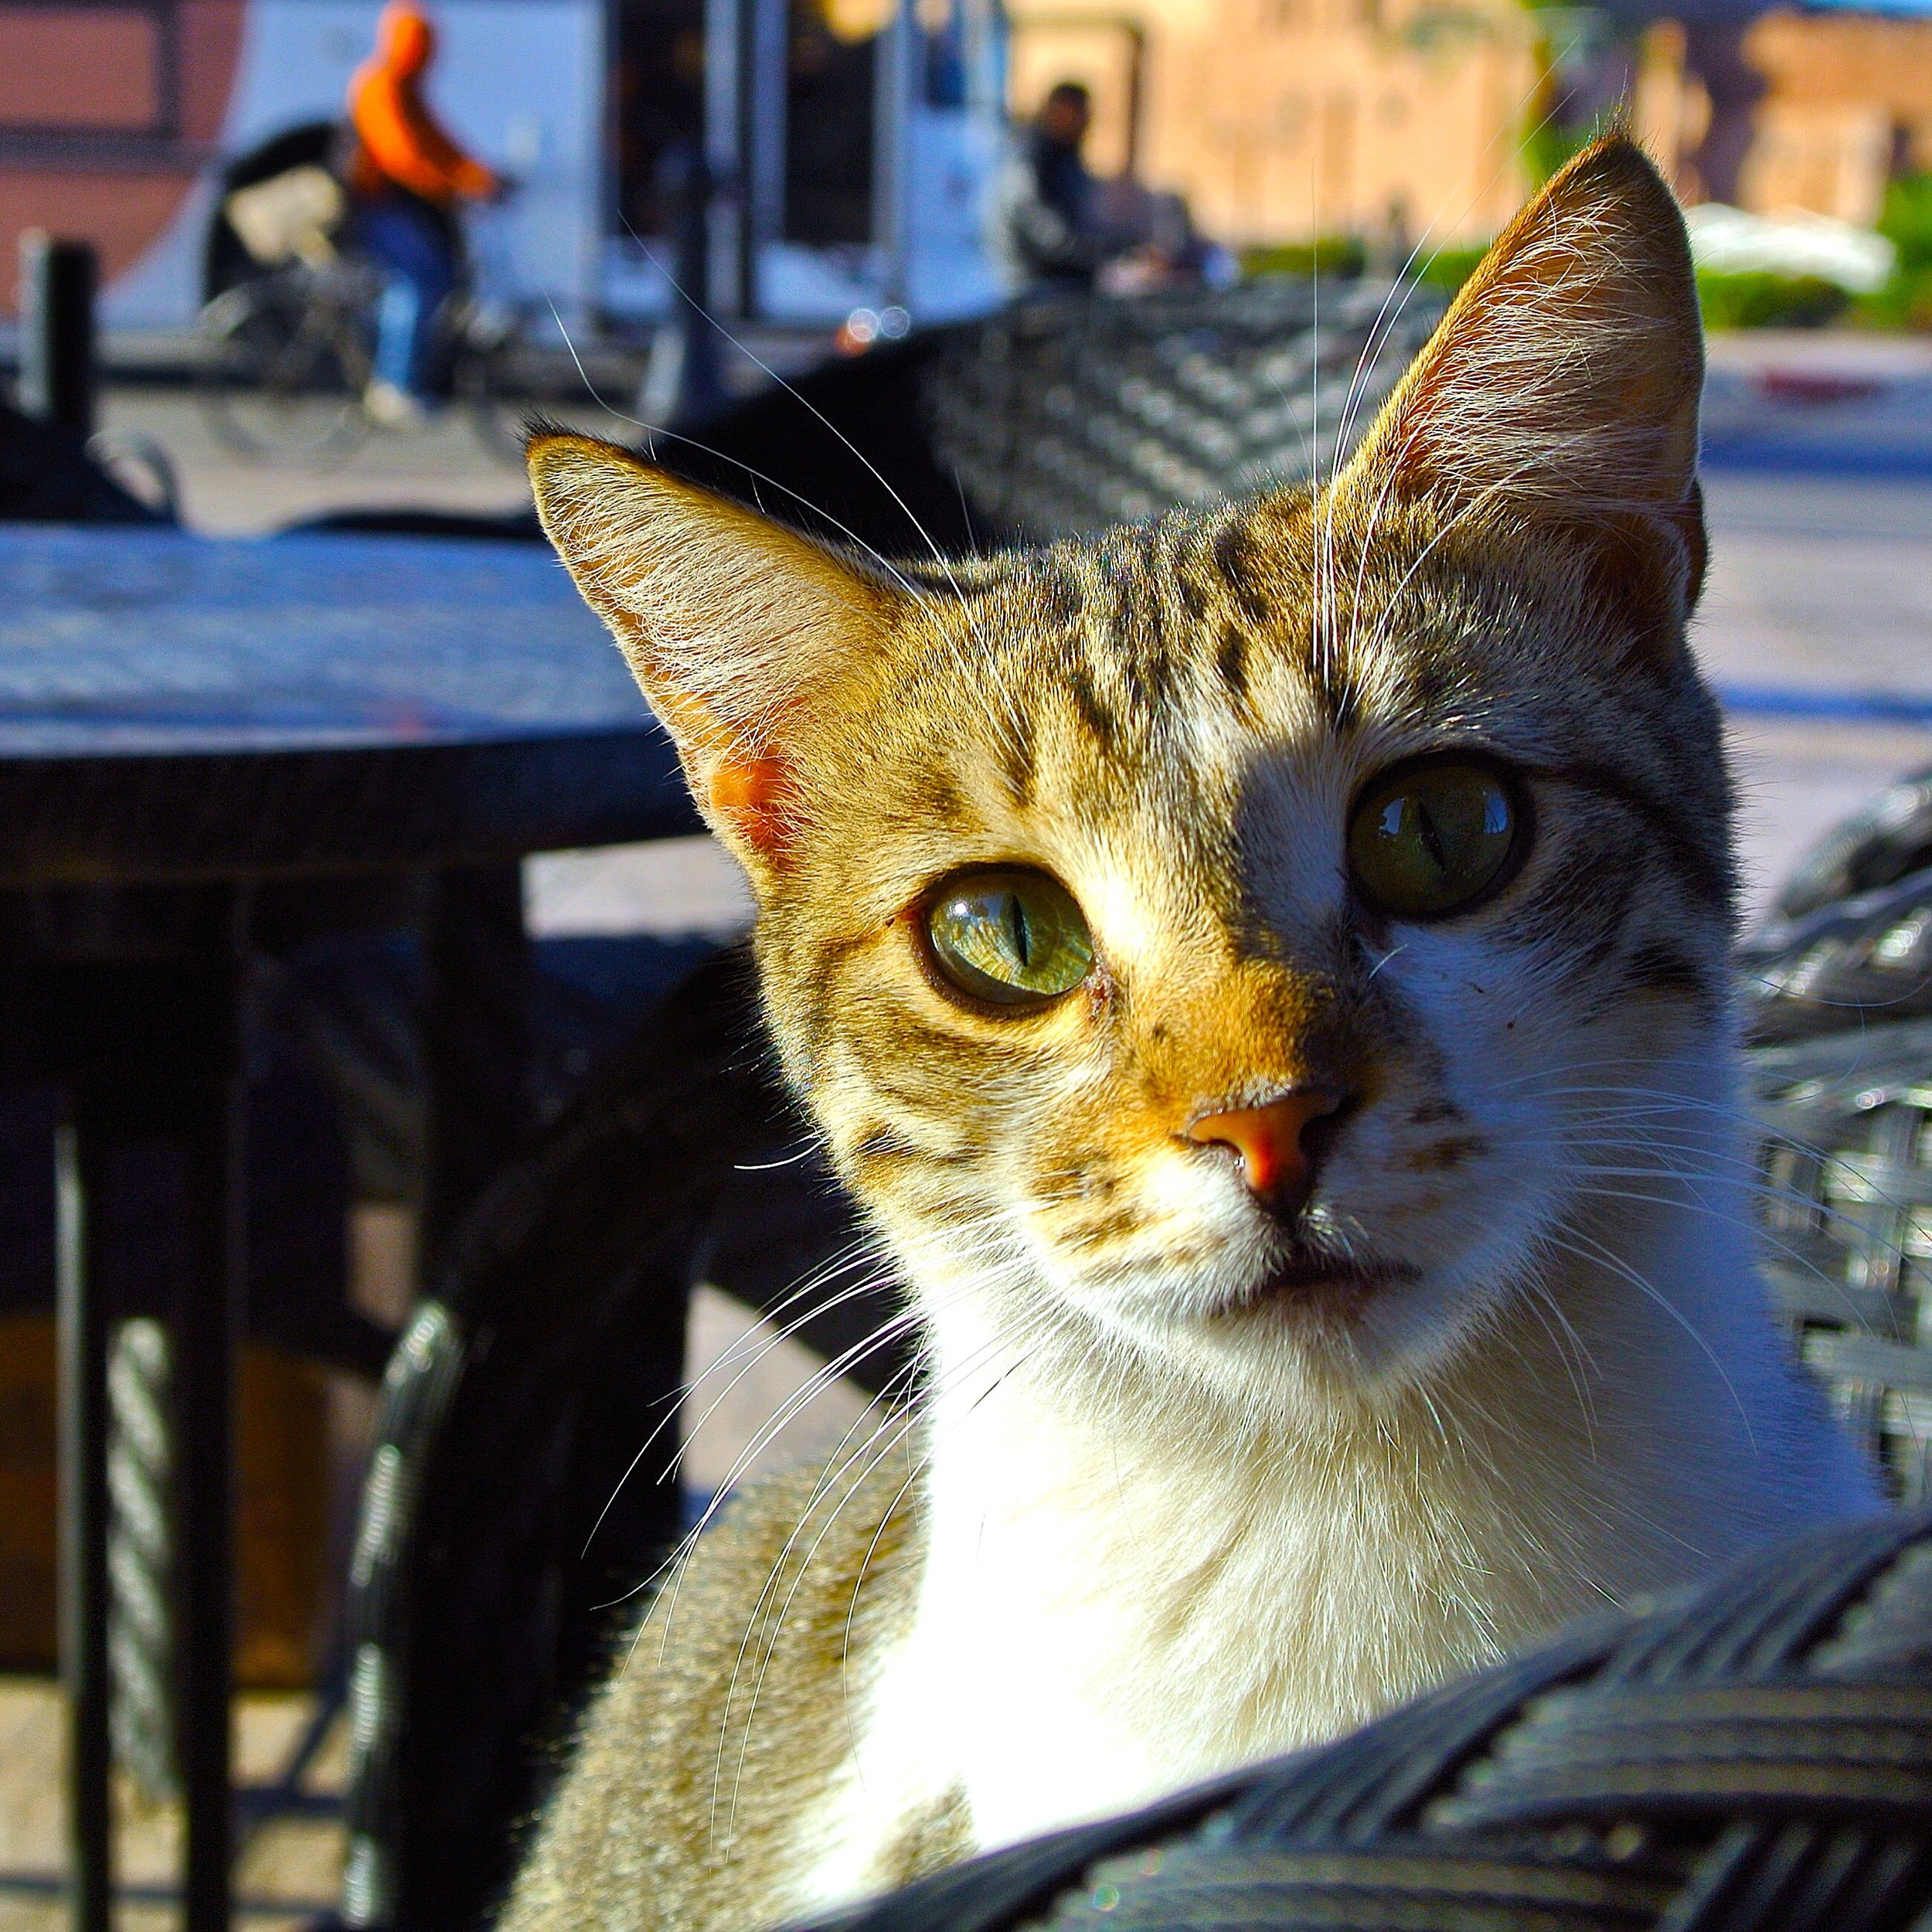 19.  Kittens and cats are a common sight among the streets of the Marrakech Medina in Morocco, indifferent to the activity around them. This little guy came to visit while we were sitting having coffee.